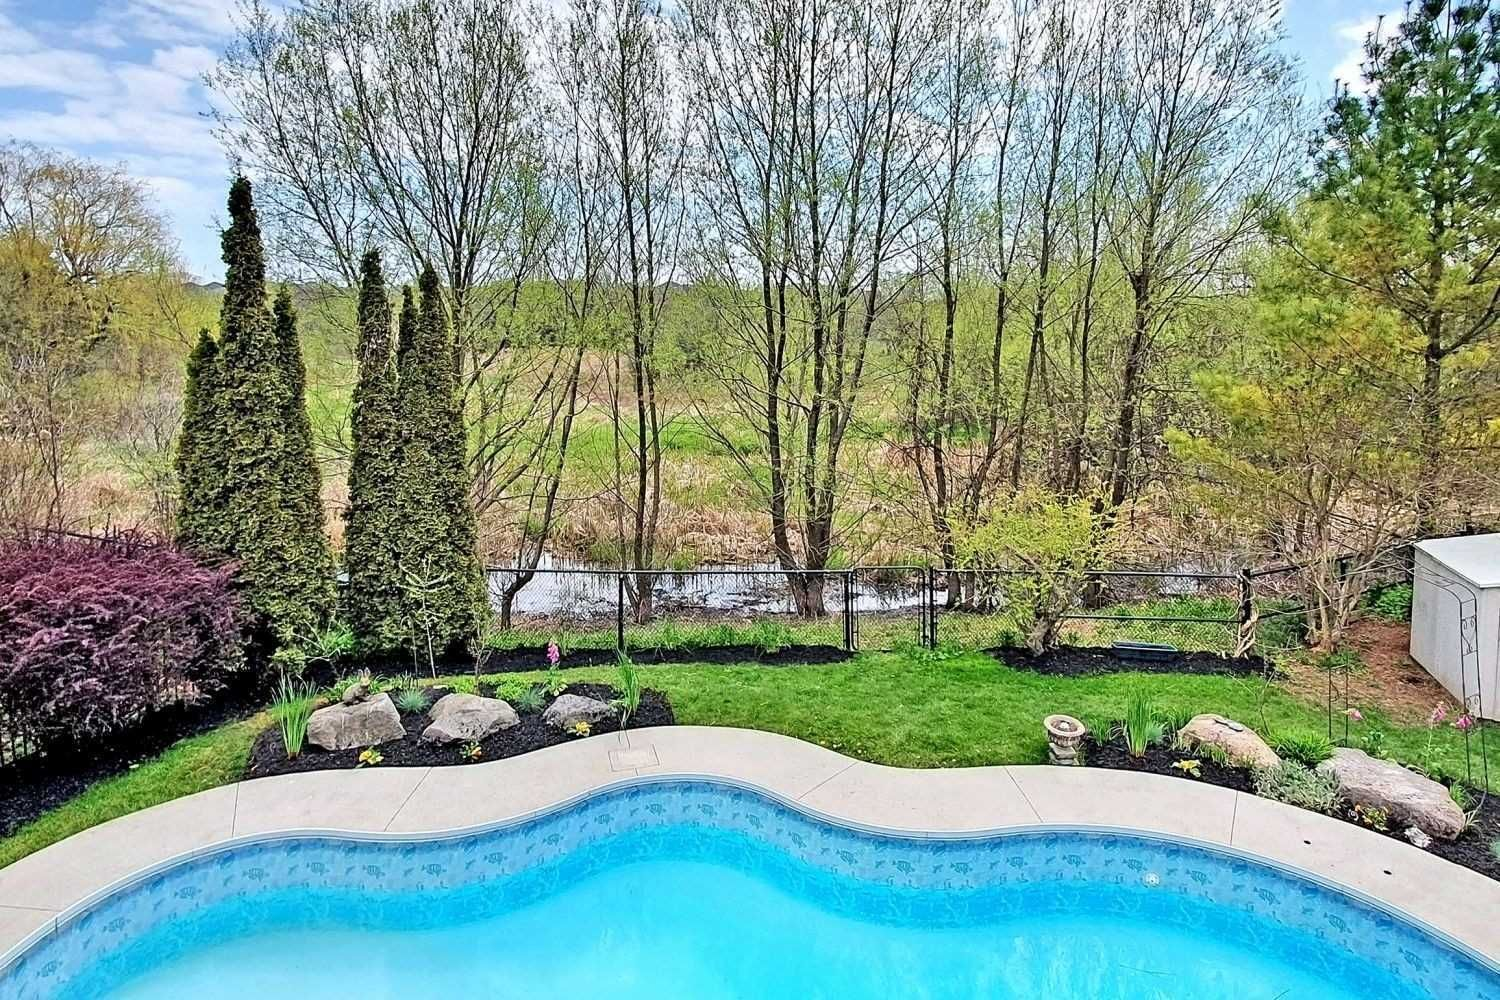 Main Photo: 38 Mackey Drive in Whitby: Lynde Creek House (2-Storey) for sale : MLS®# E4763412